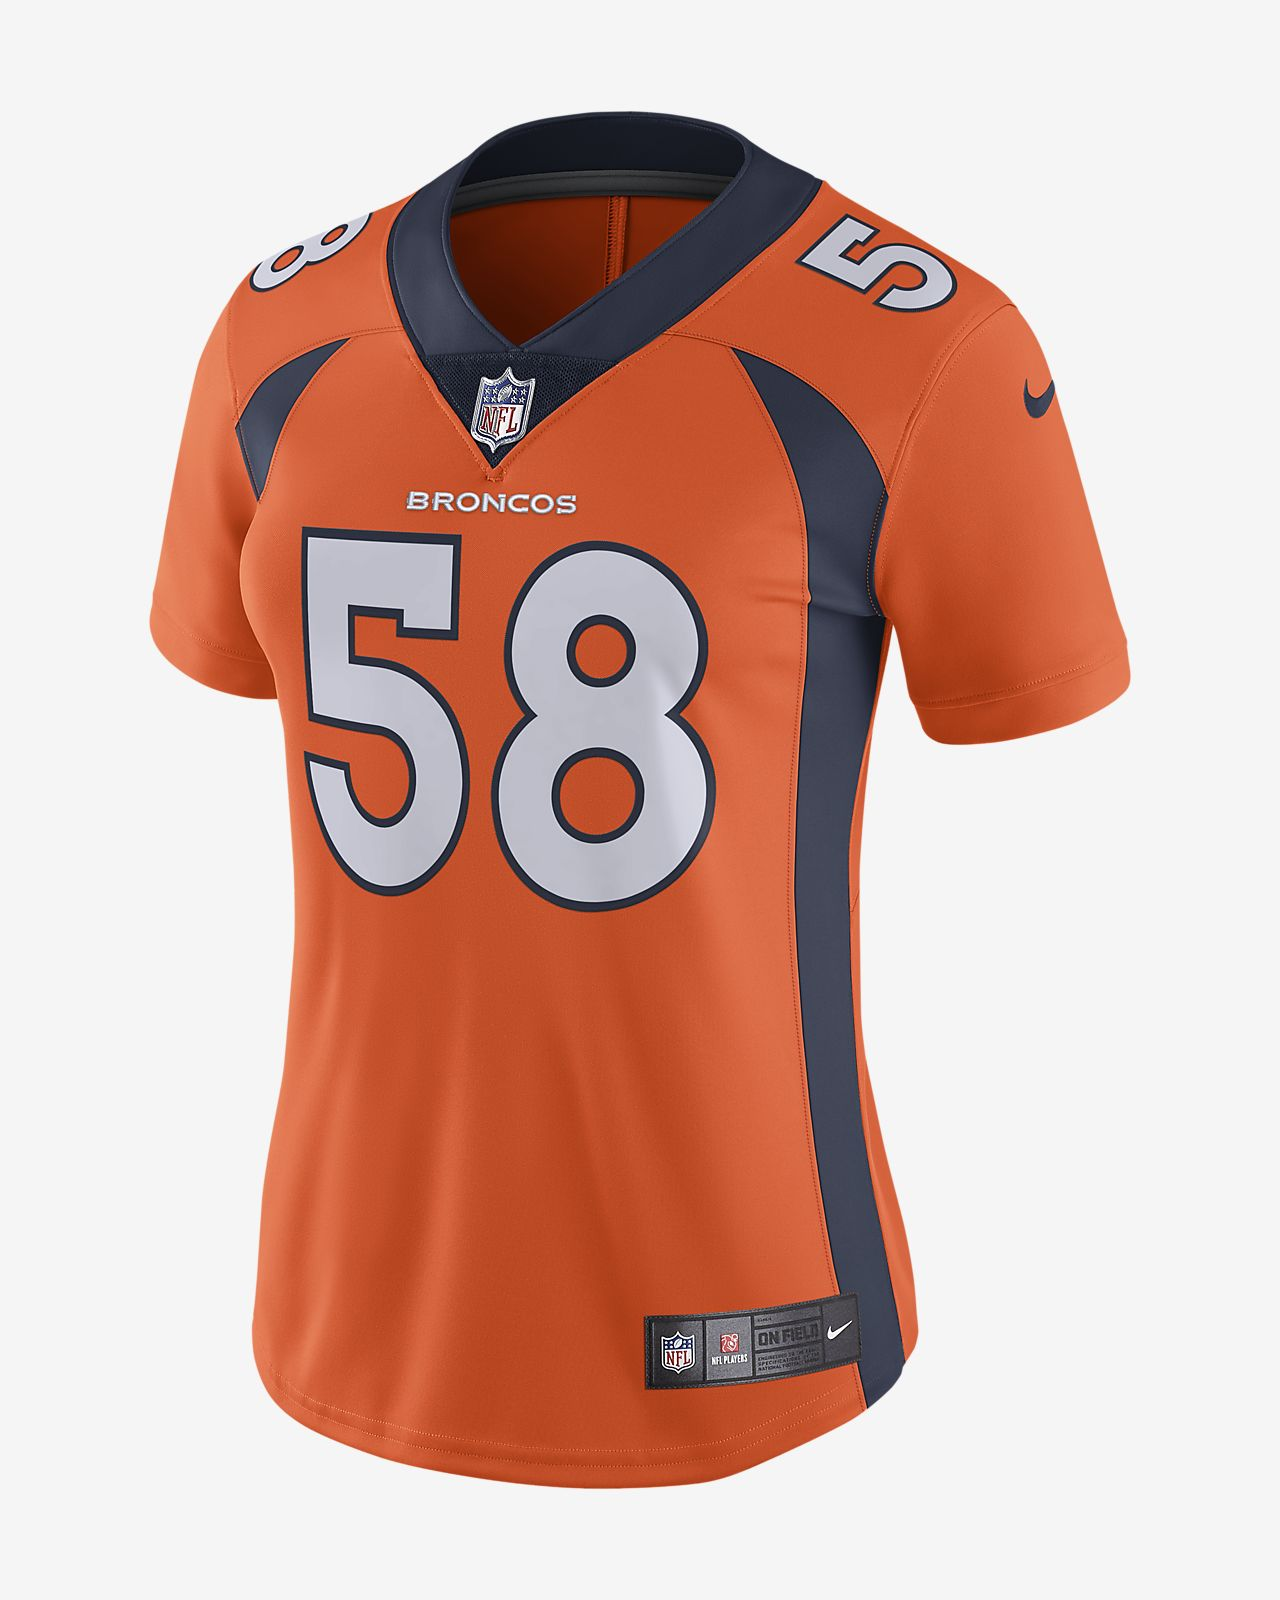 broncos shirts for sale